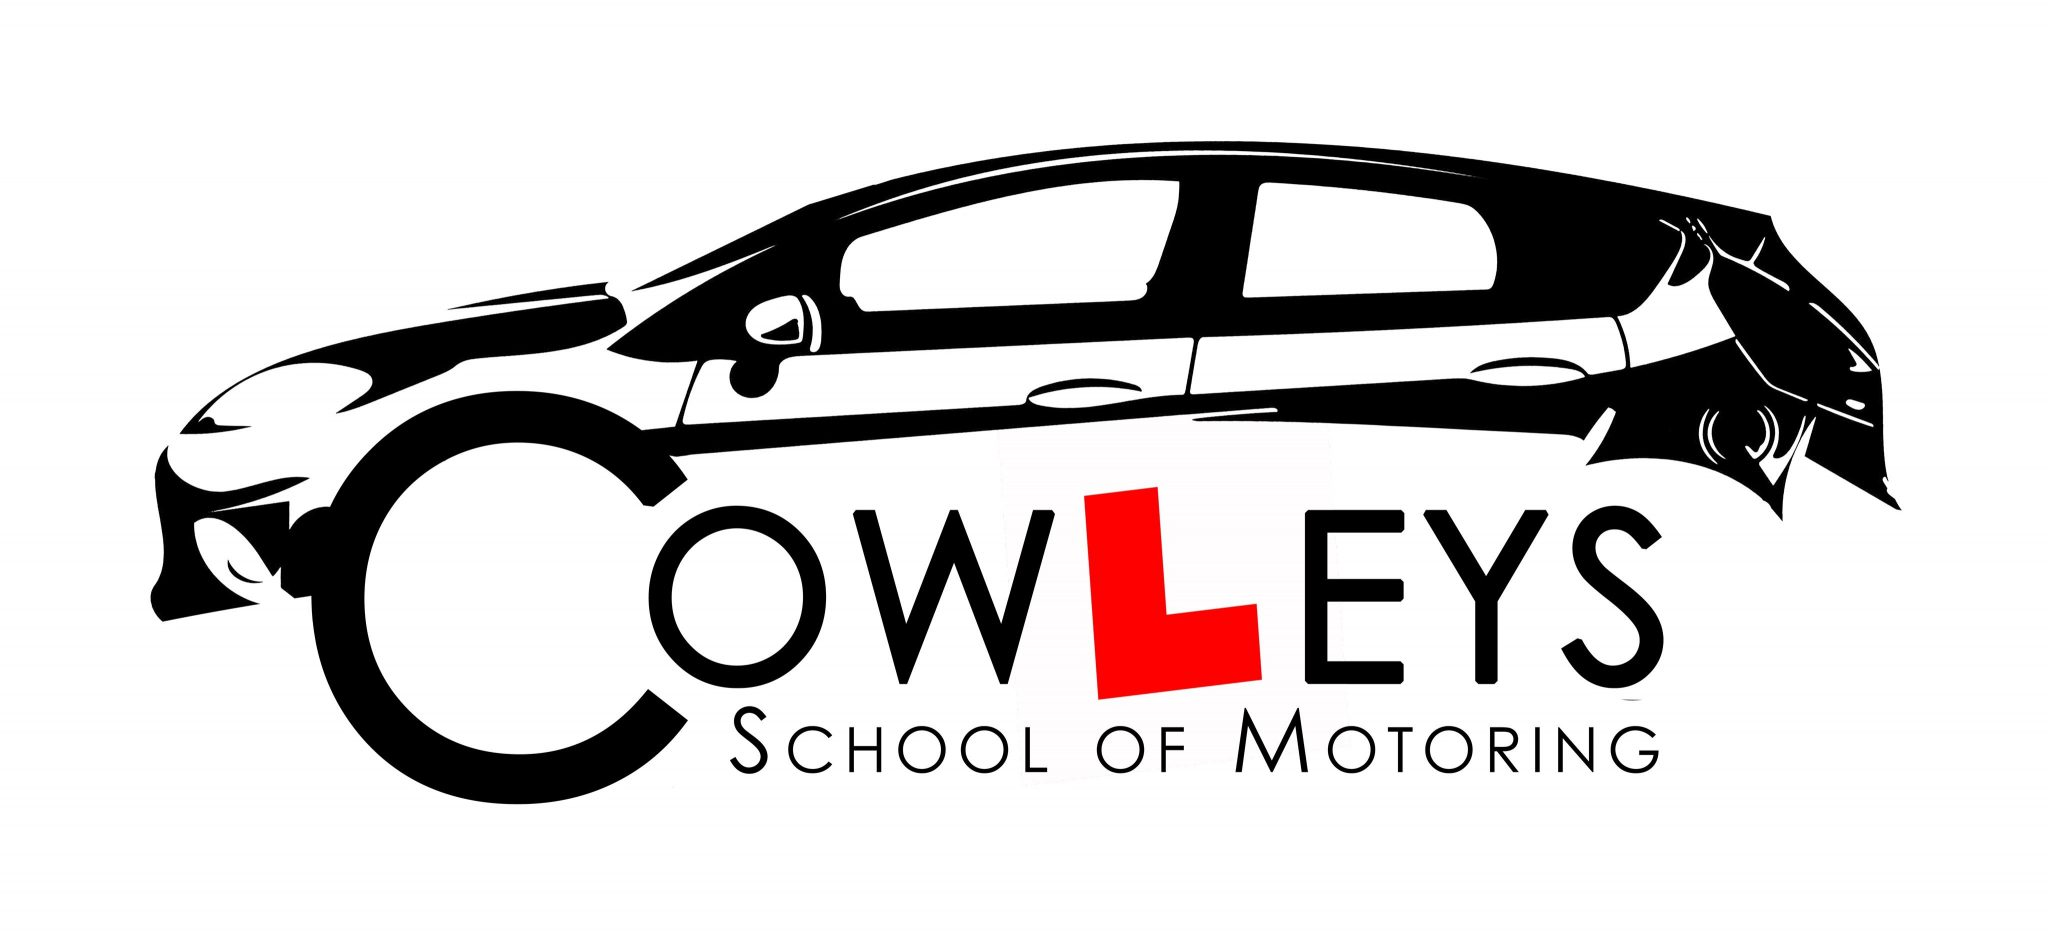 Cowley's School of Motoring